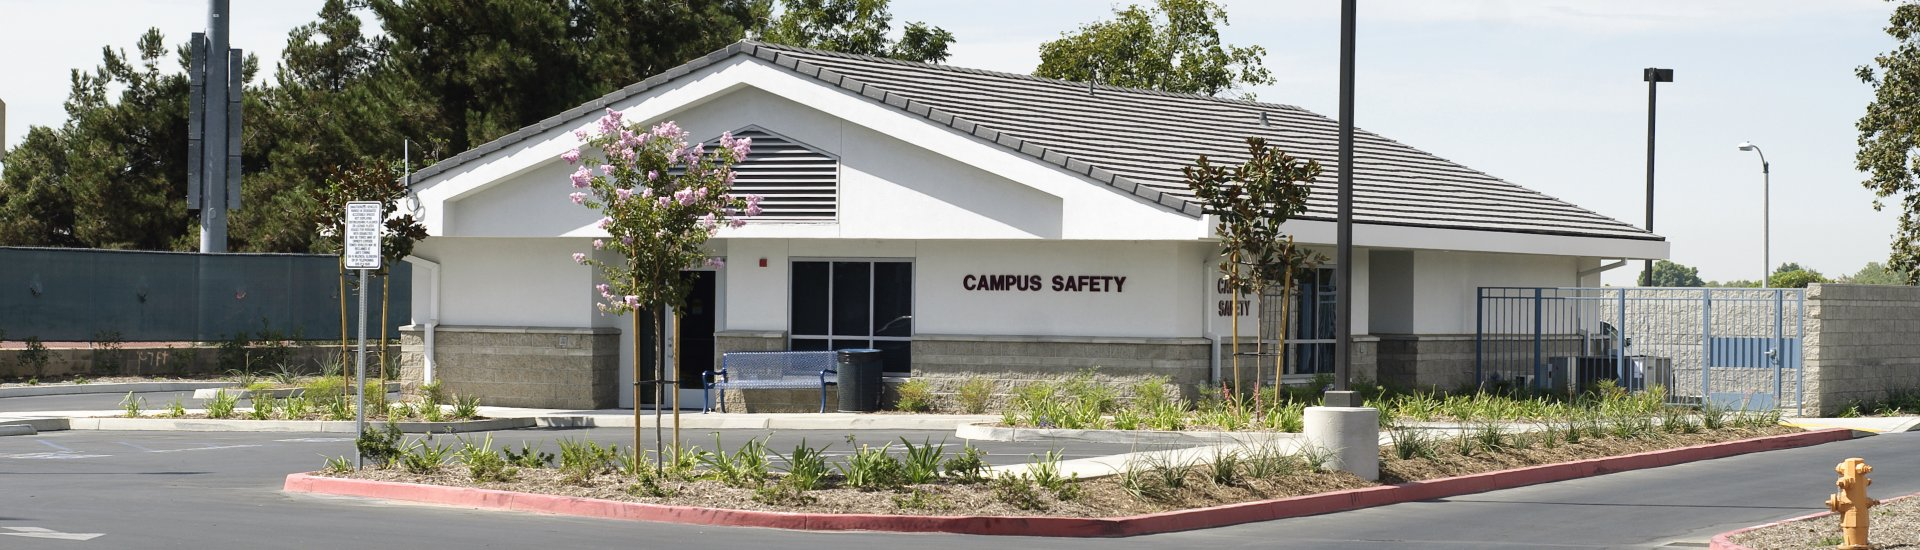 Campus Safety building located at the entry of the main parking lot at Citrus Avenue and Foothill Blvd.